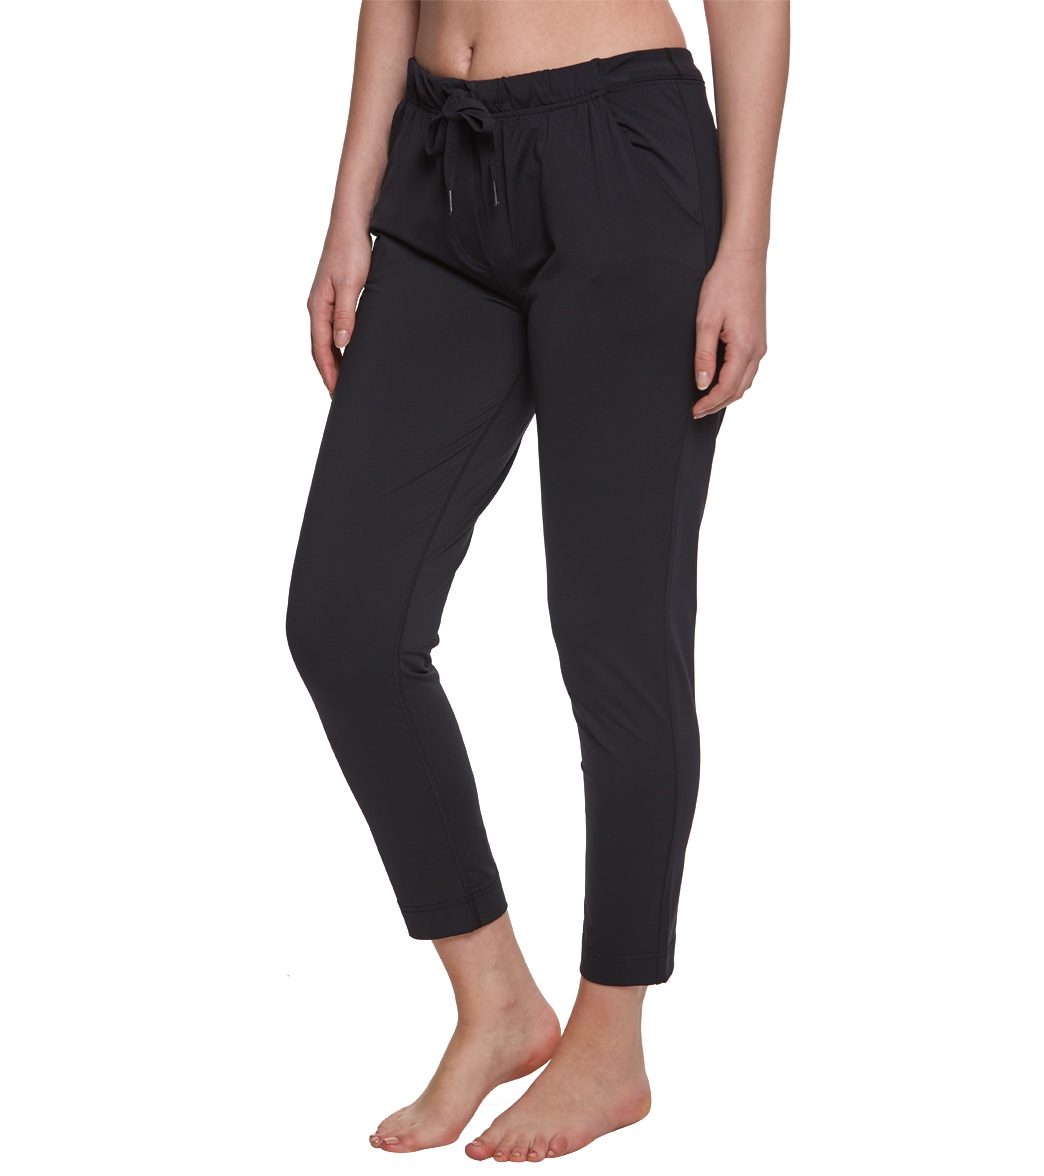 cba990745 Glyder Fare Cropped Joggers at YogaOutlet.com - Free Shipping